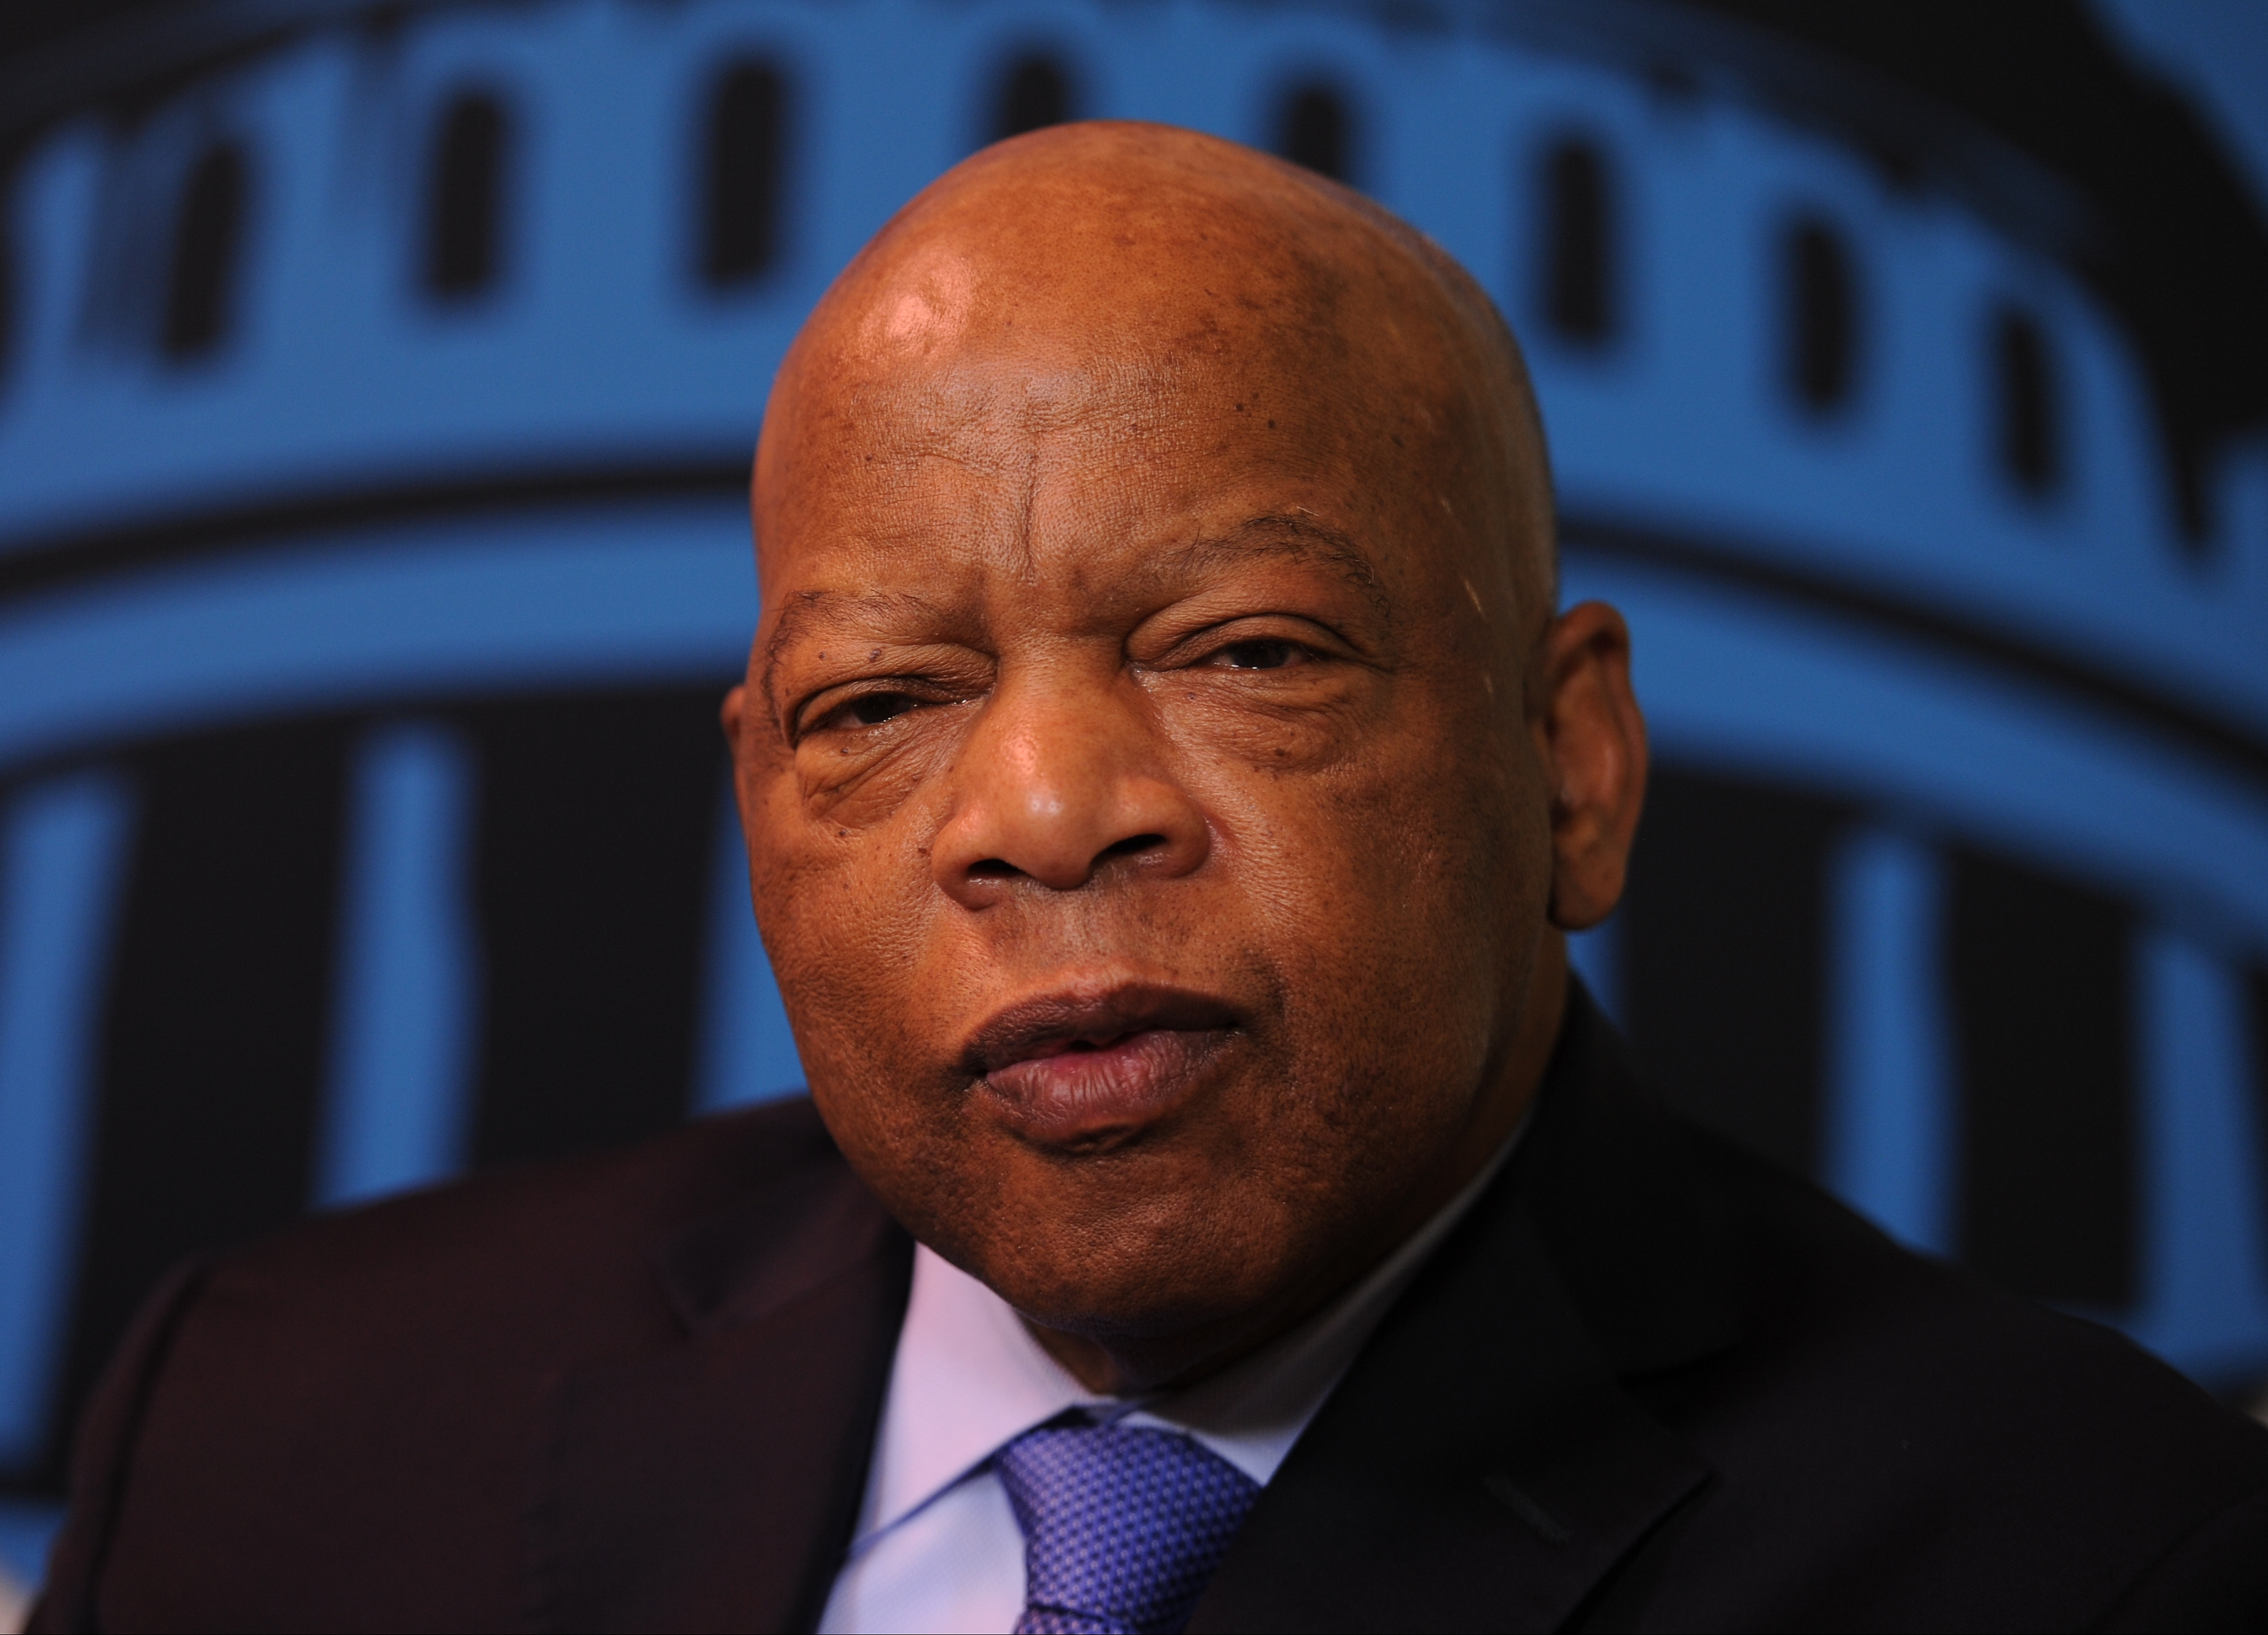 50 years after Selma, John Lewis on unfinished business